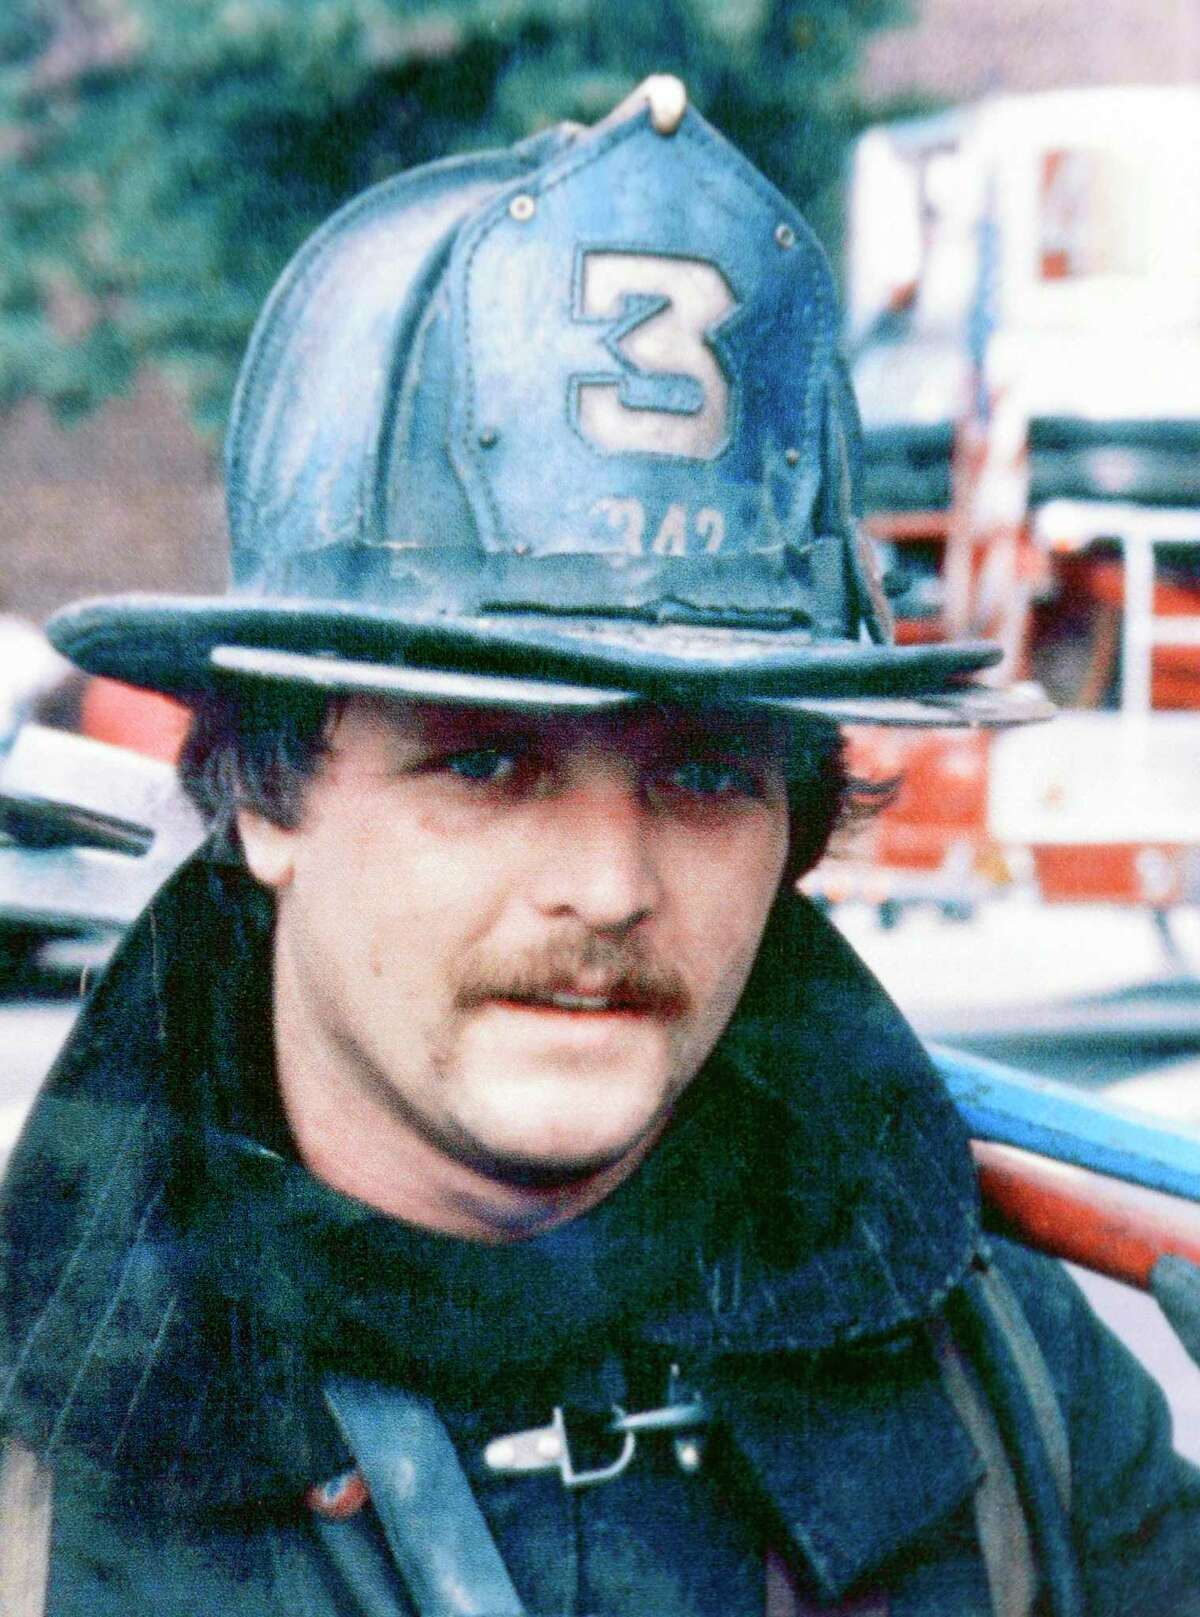 A dated photograph of New York City firefighter Christopher Blackwell, who died in the World Trade Center attacks on Sept. 11, 2001.